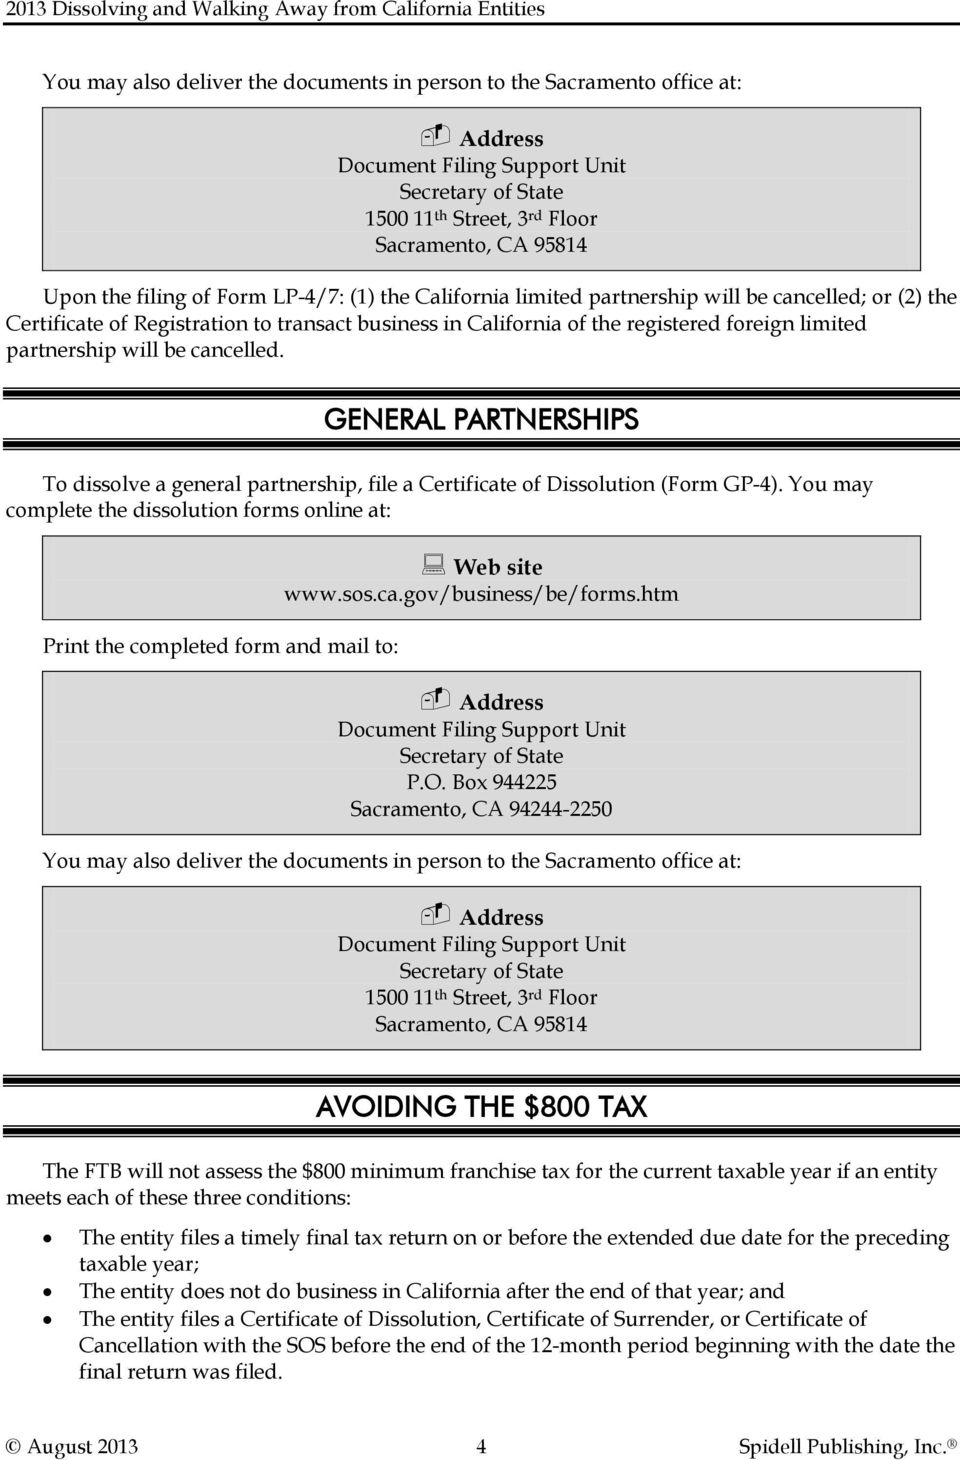 2013 dissolving and walking away from california entities pdf cancelled general partnerships to dissolve a general partnership file a certificate of dissolution falaconquin